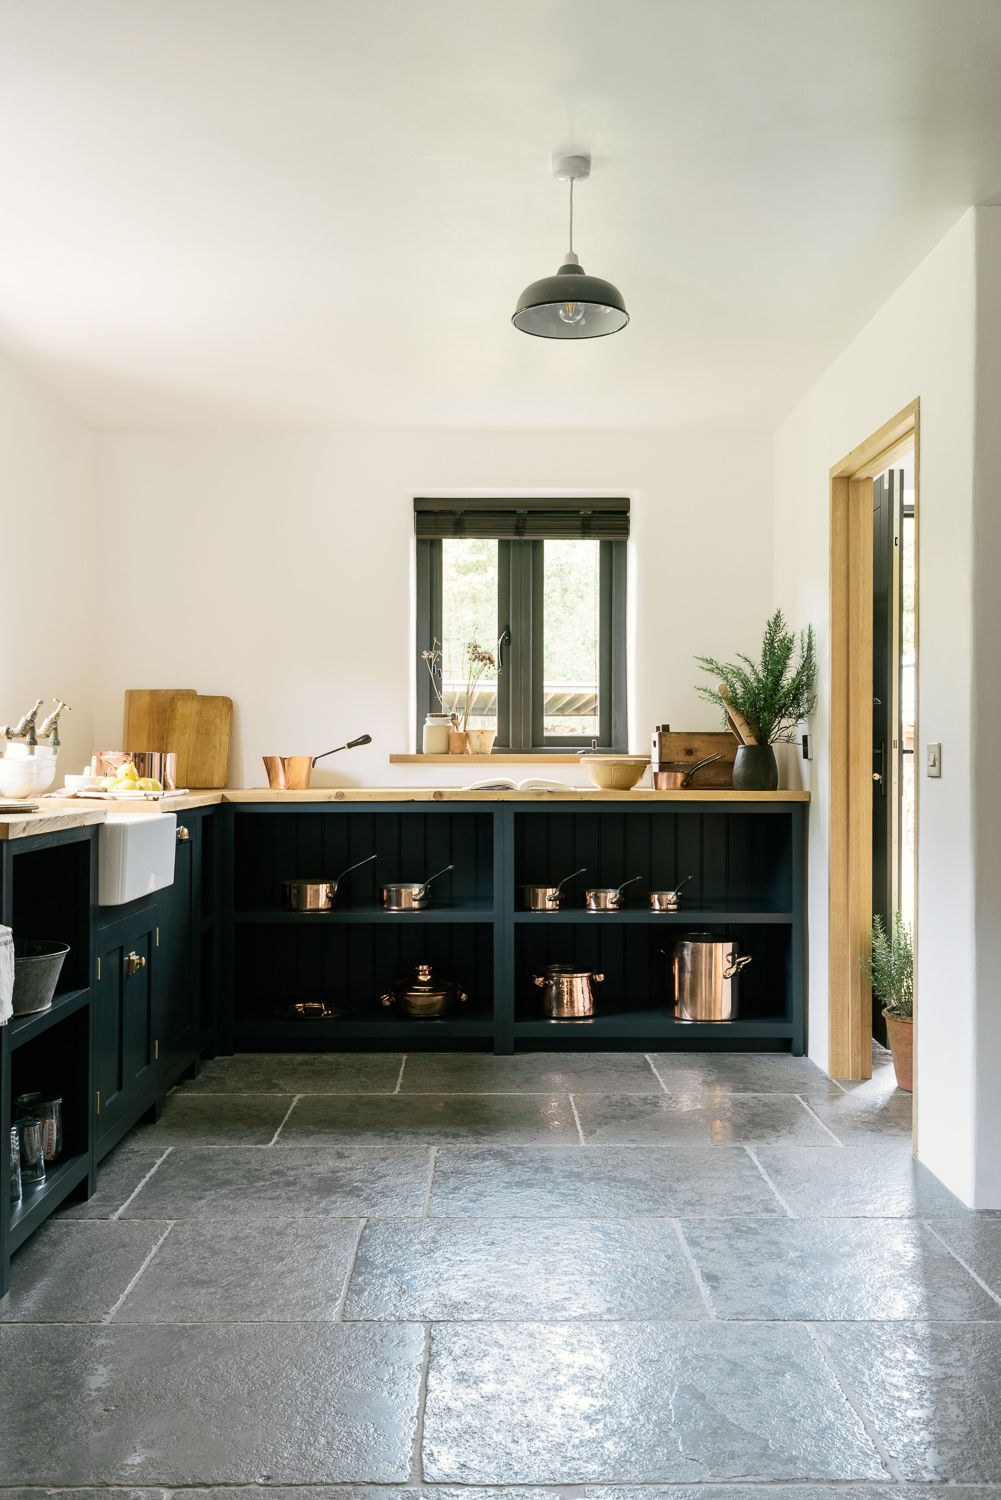 Merveilleux The Worn Grey Limestone By Floors Of Stone Works So Perfectly In This  Stylish DeVOL Kitchen